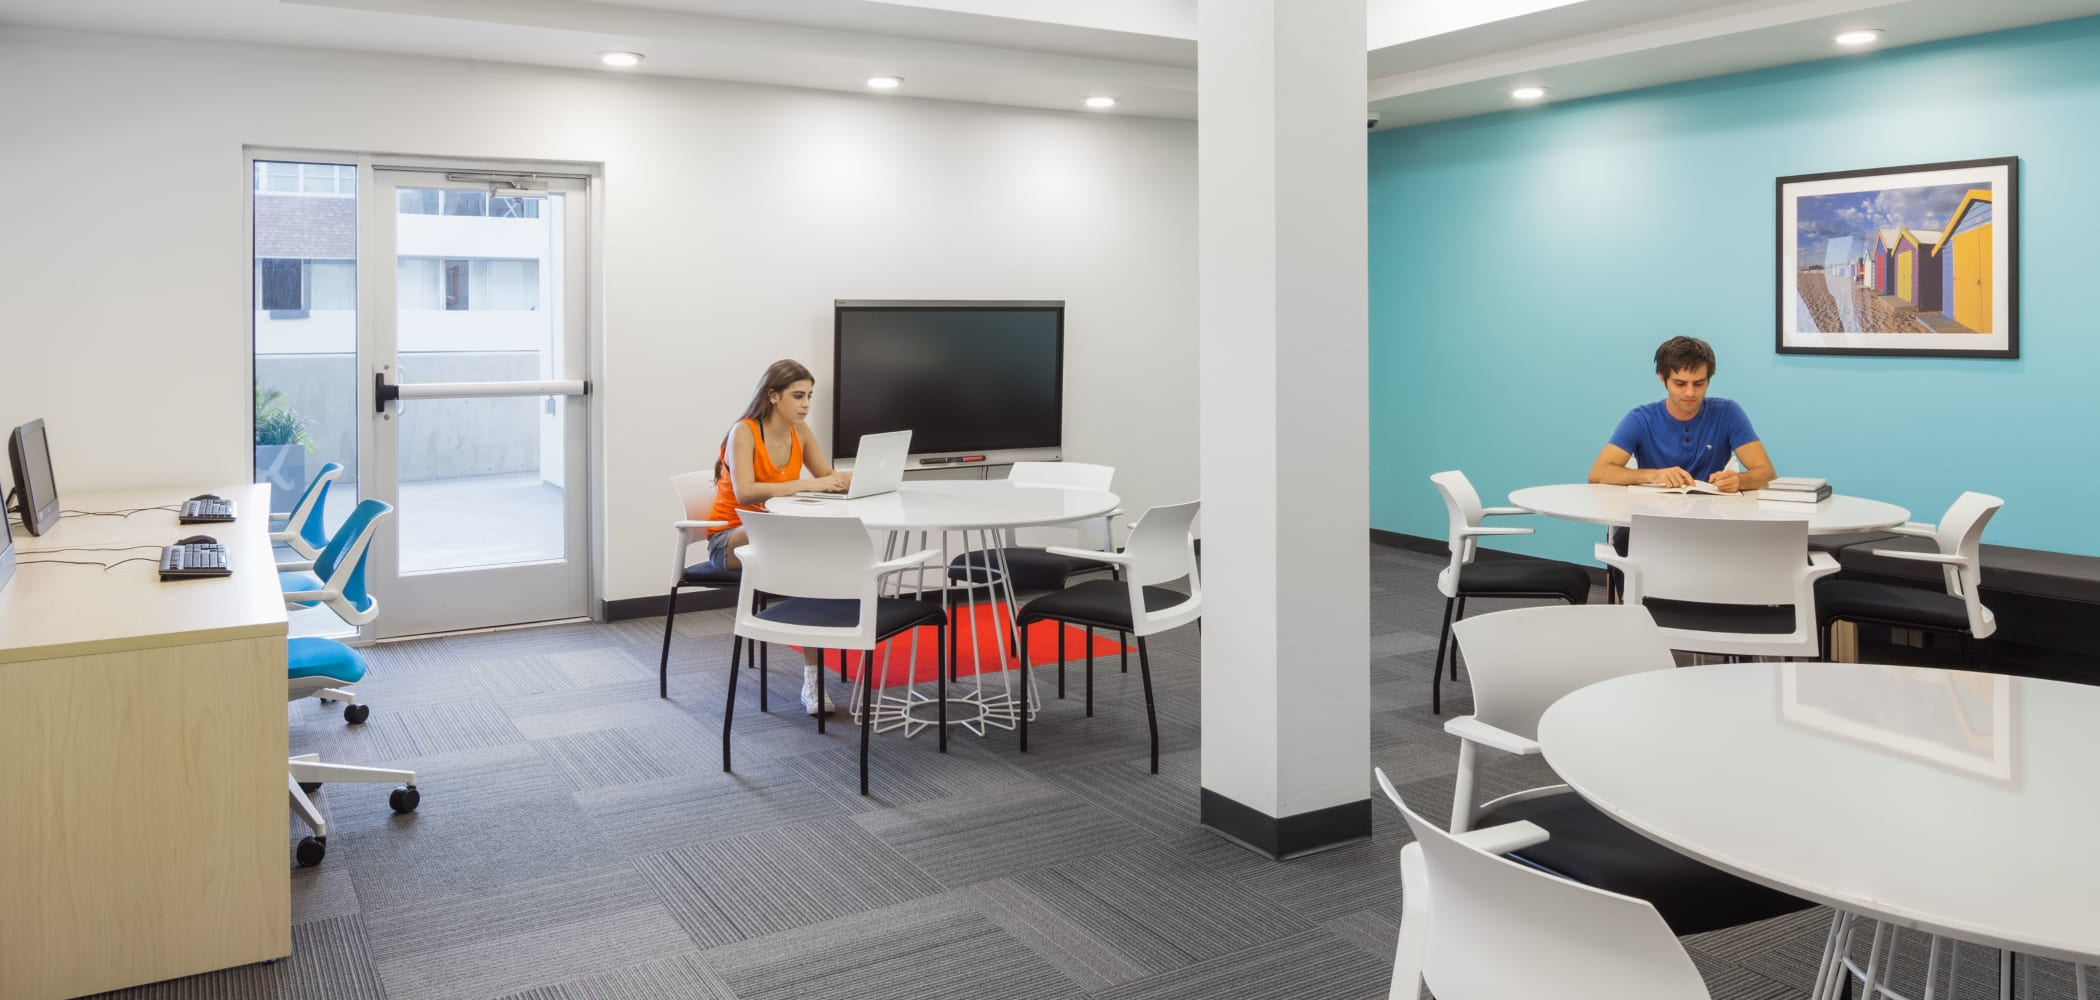 Study space at Social 28 in Gainesville, Florida